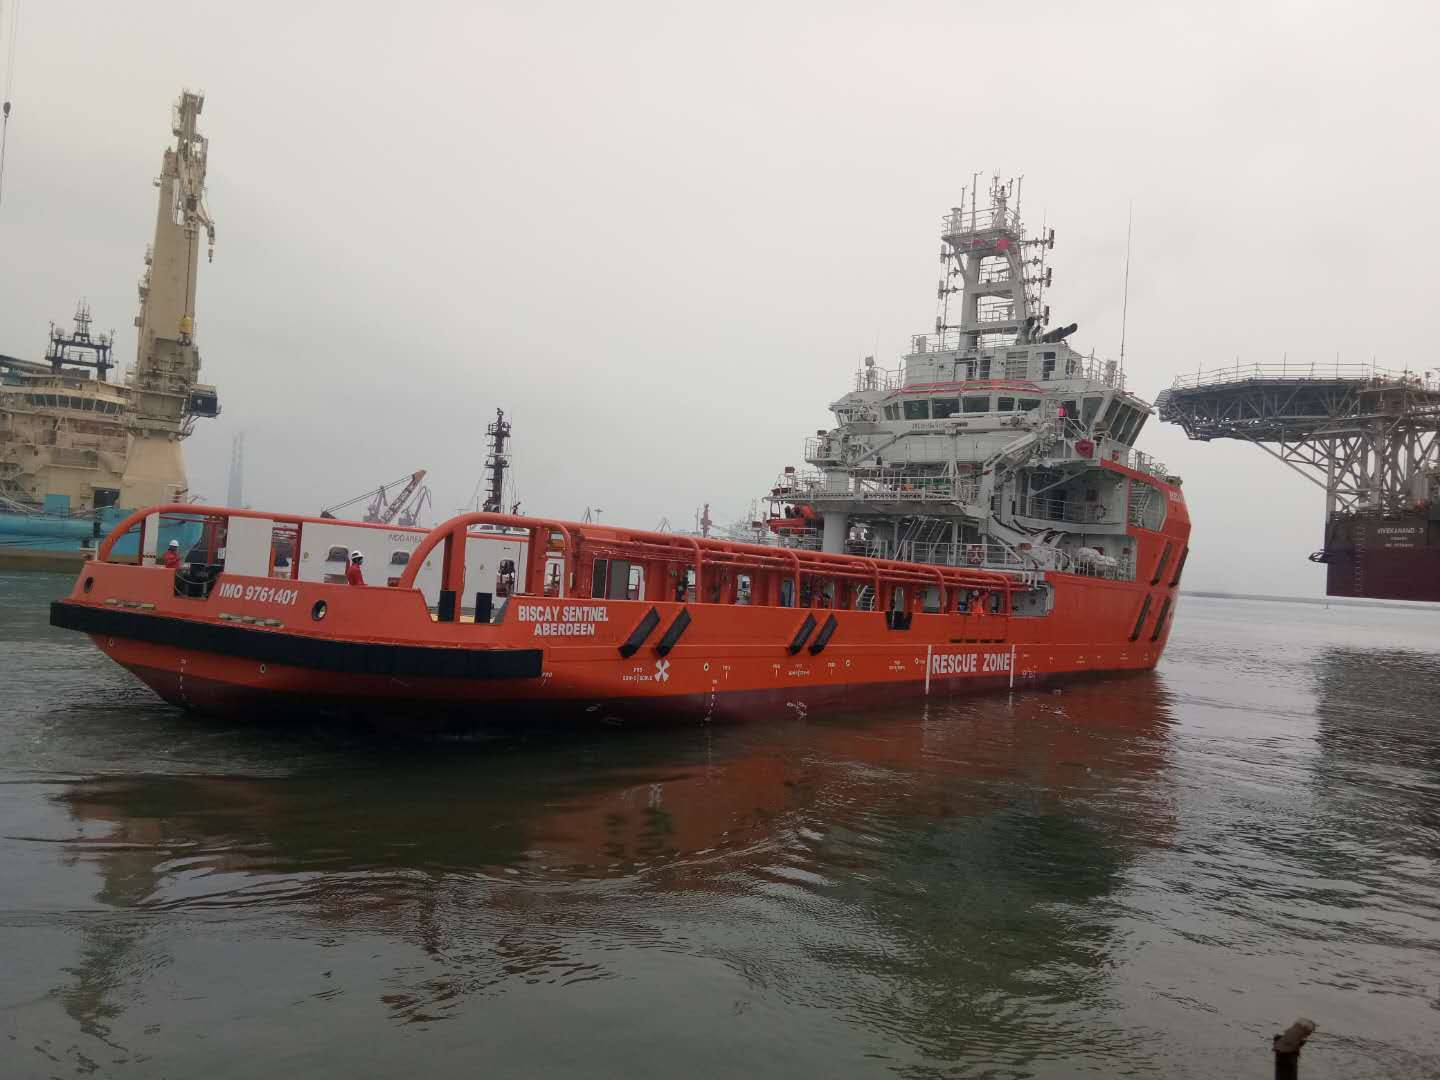 Biscay Sentinel is expected to arrive in Aberdeen in May.